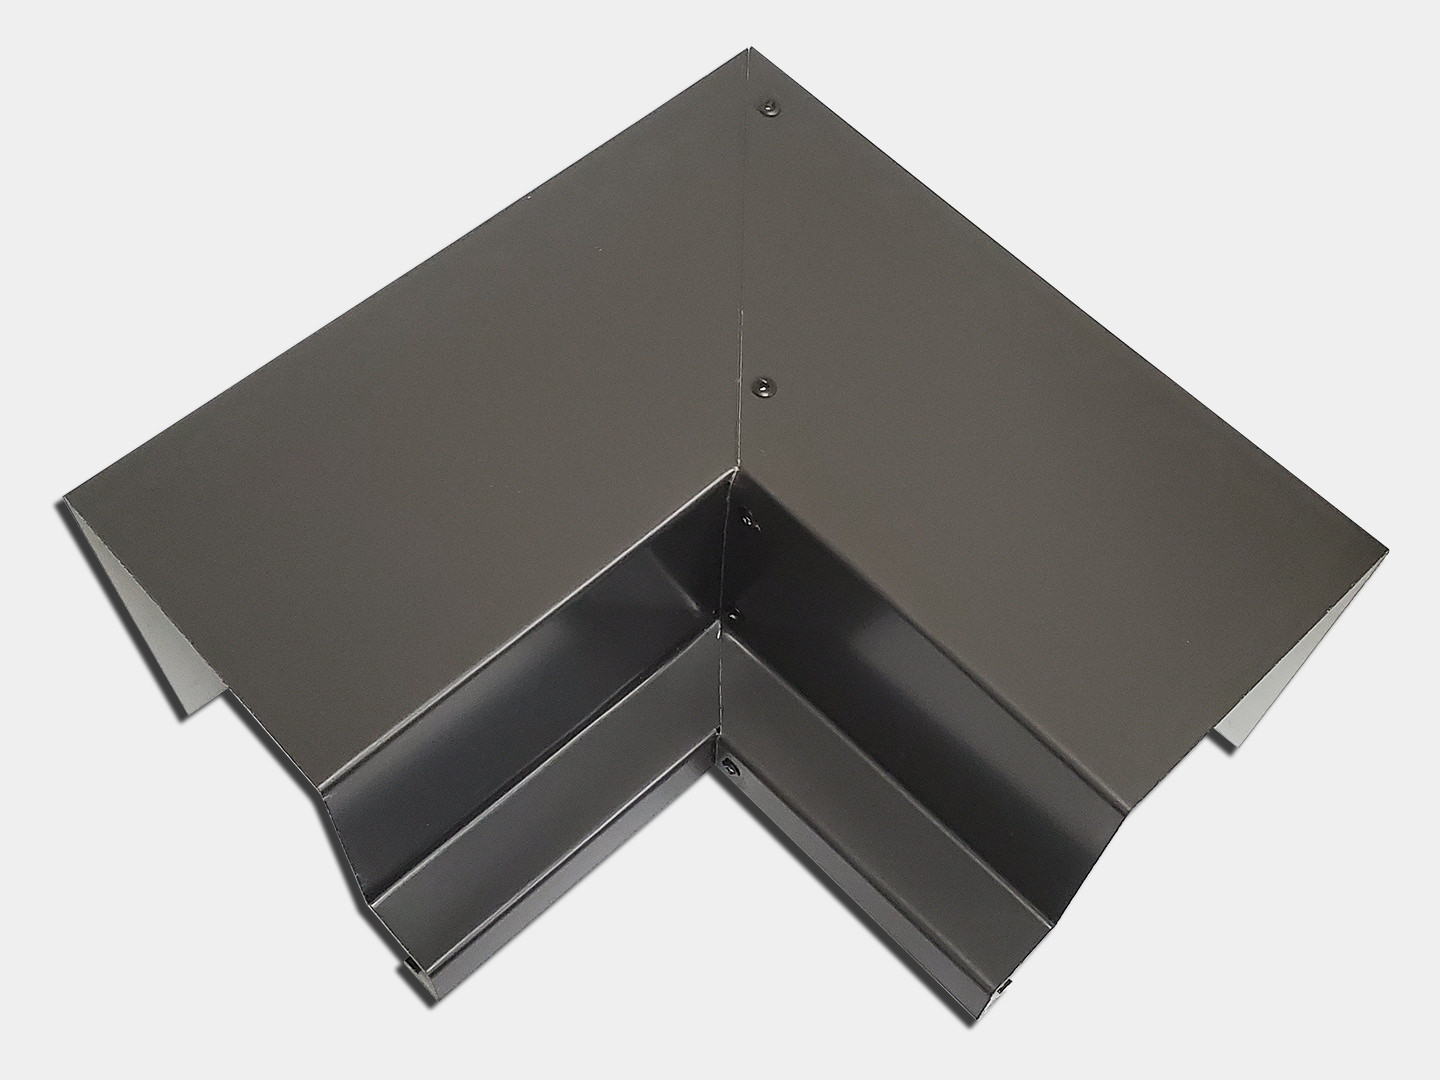 Commercial box gutter outside miter - bronze steel